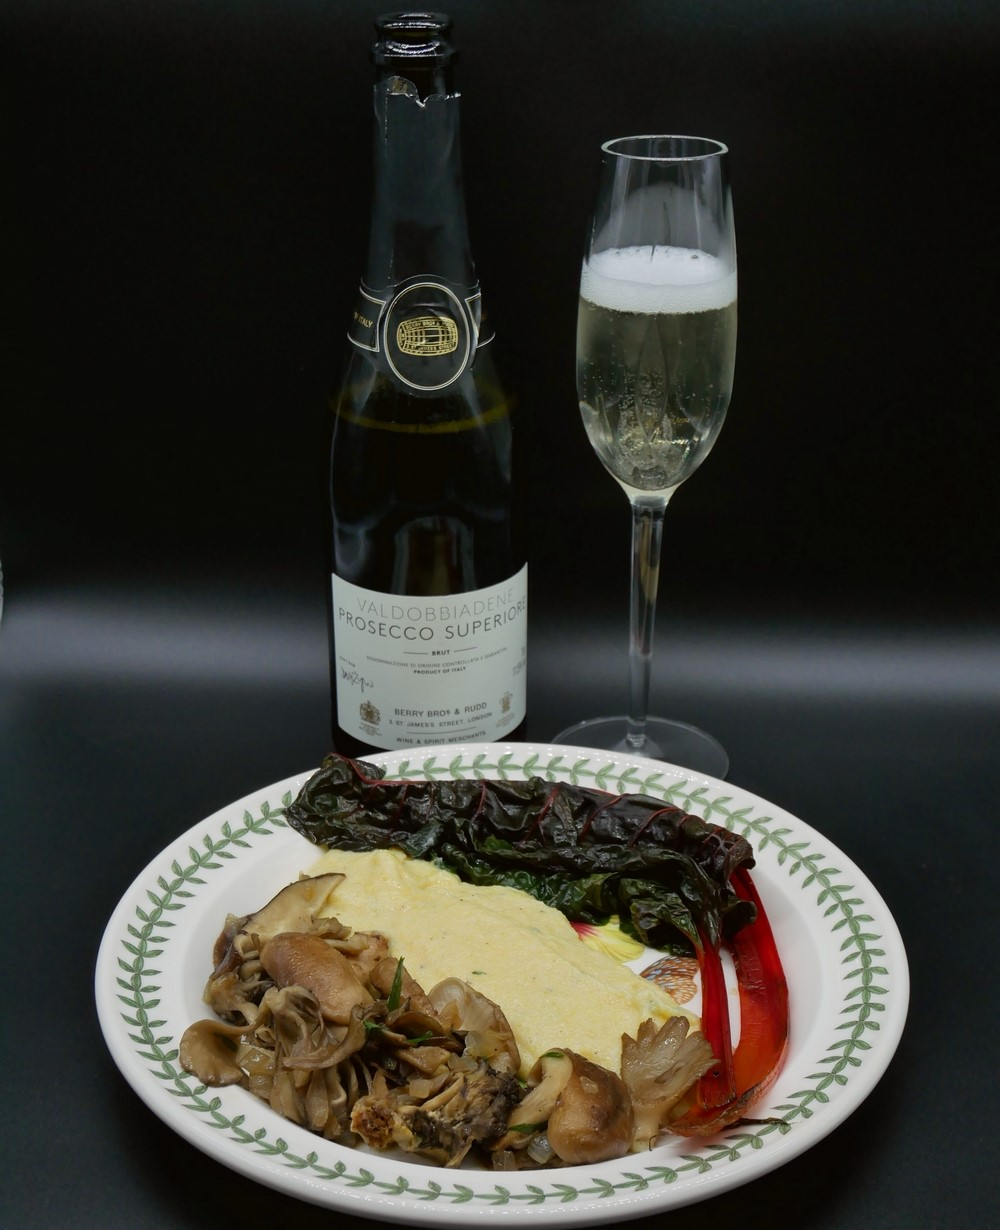 Berry Bros - Prosecco with polenta and wild mushrooms - Christmas Wine pairing